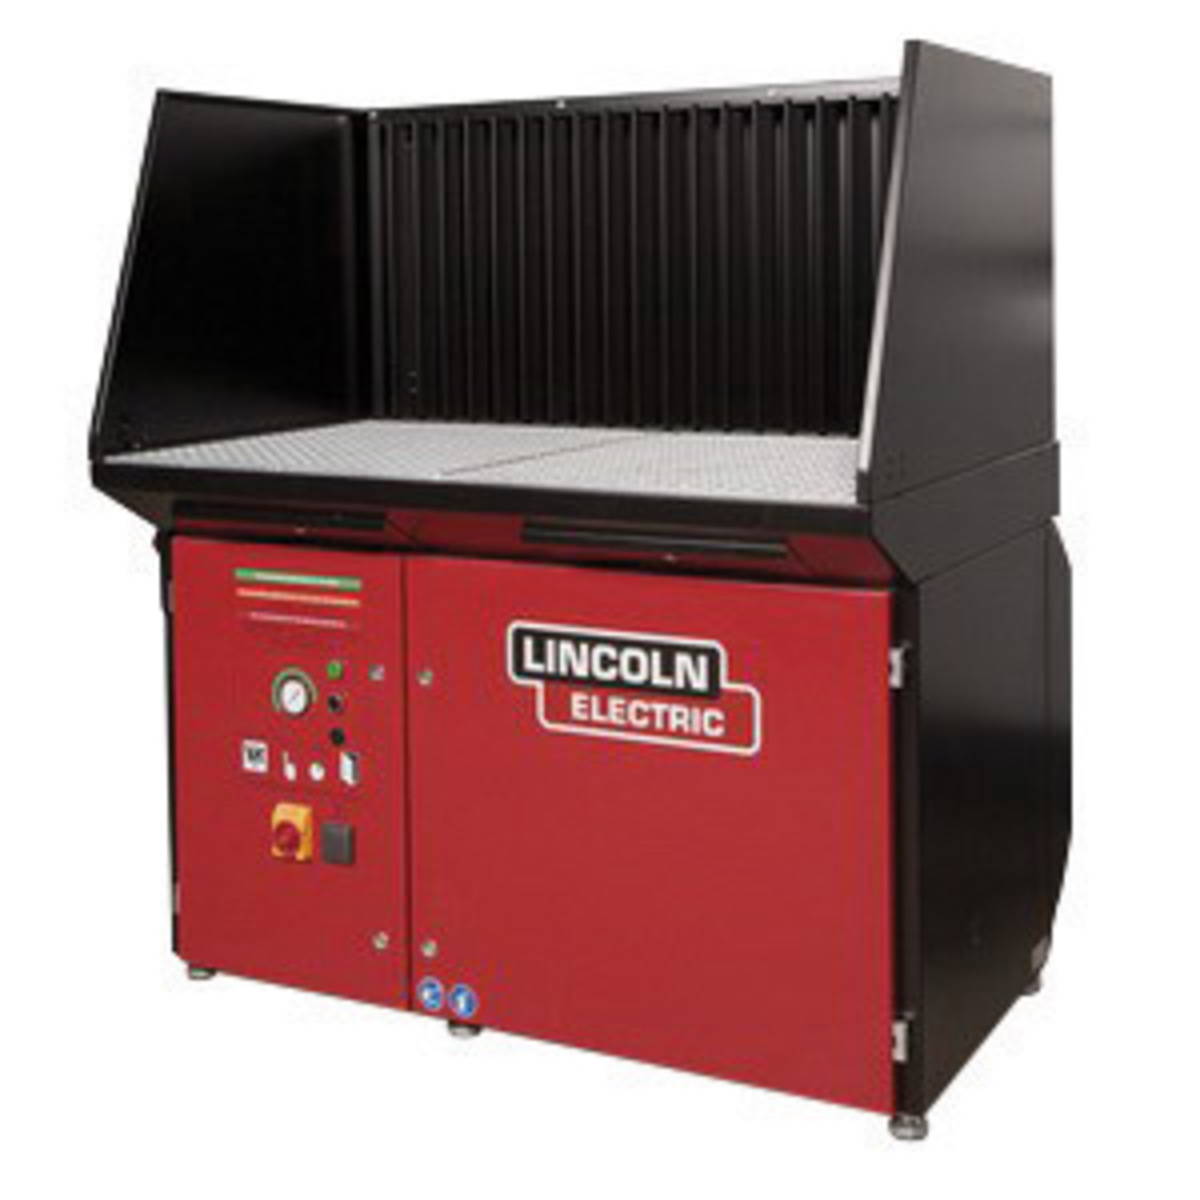 Airgas Link2751 2 Lincoln Electric Downflex 200 M